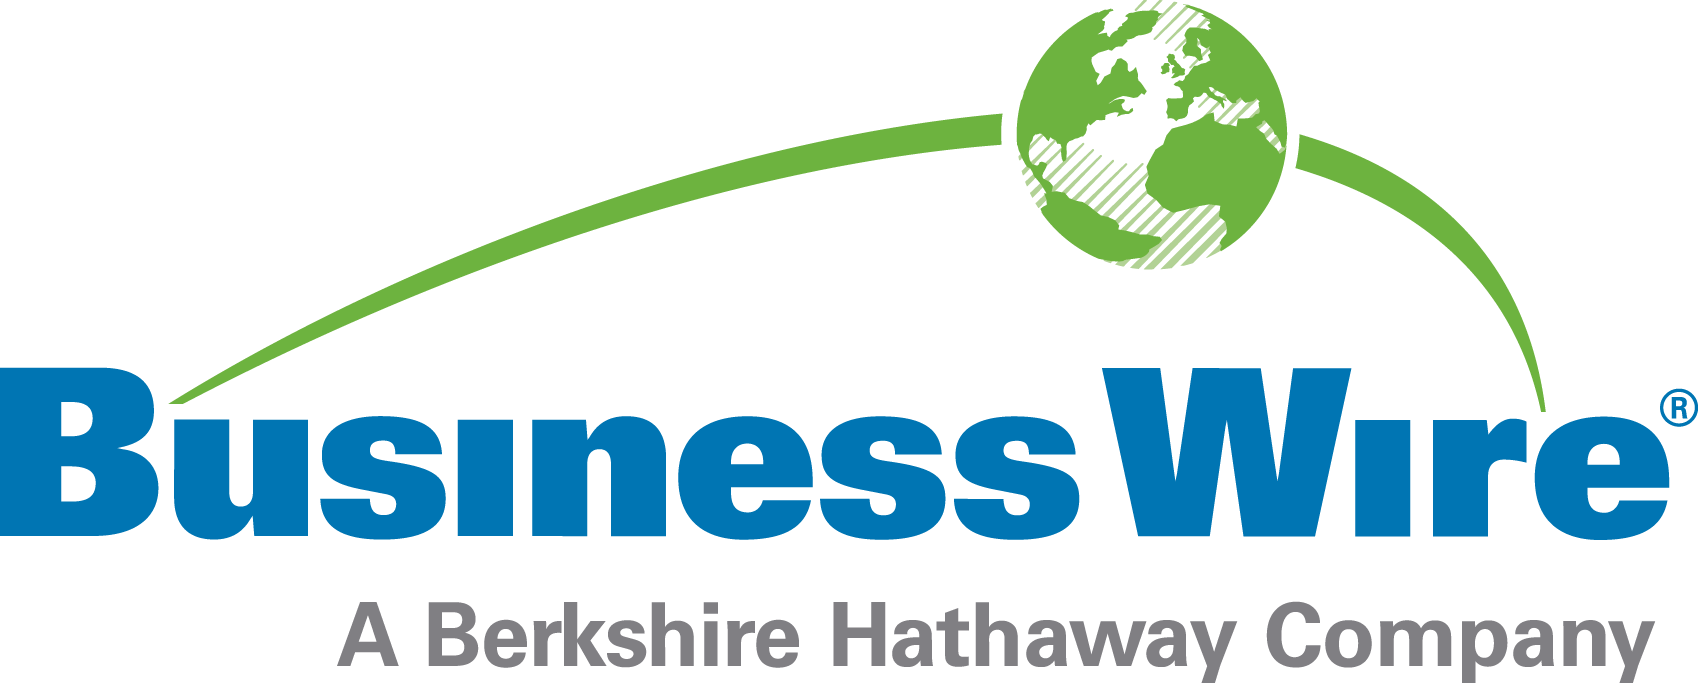 Business wire logo png. Pr news